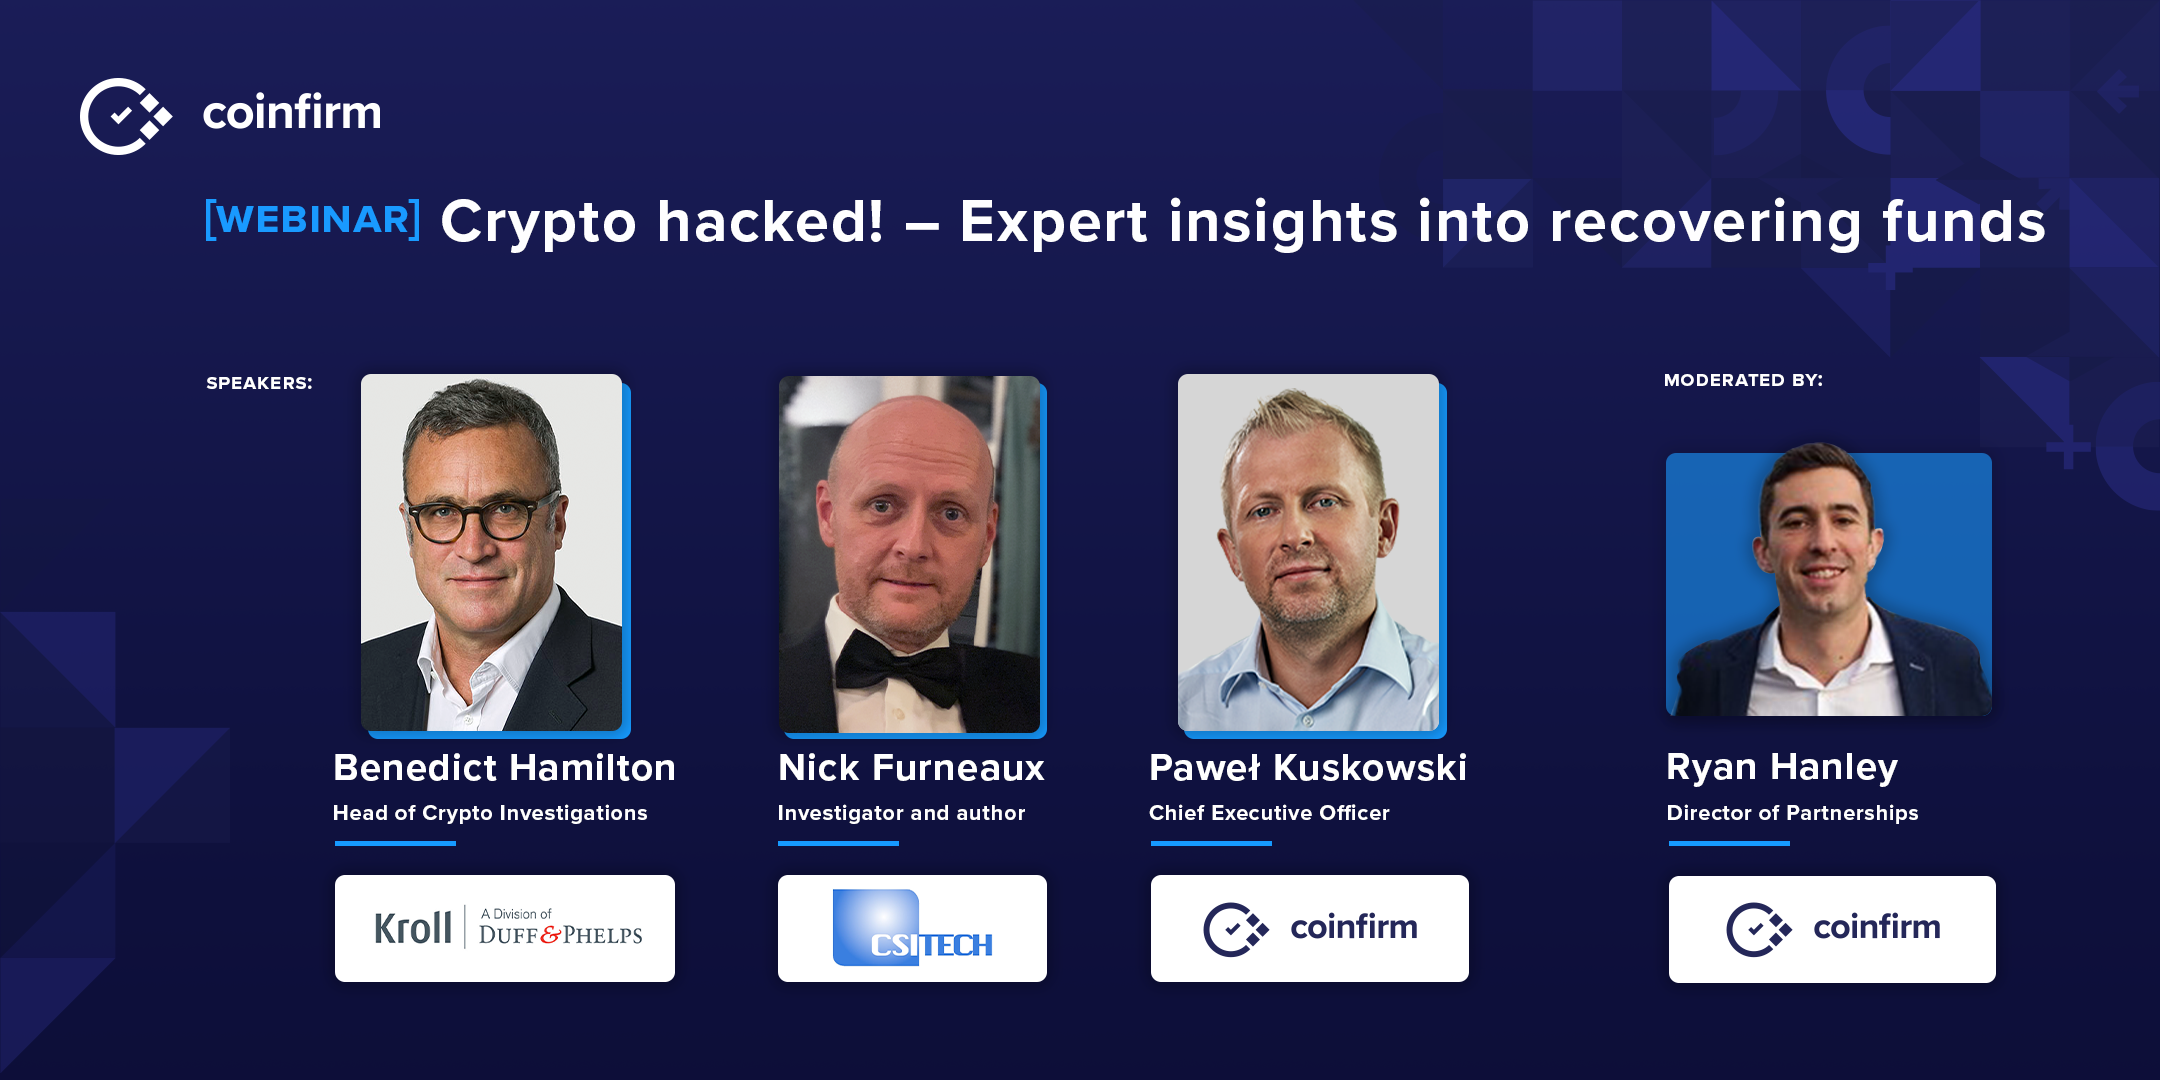 Coinfirm Webinar Crypto Hacked Expert Insights Into Recovering Funds